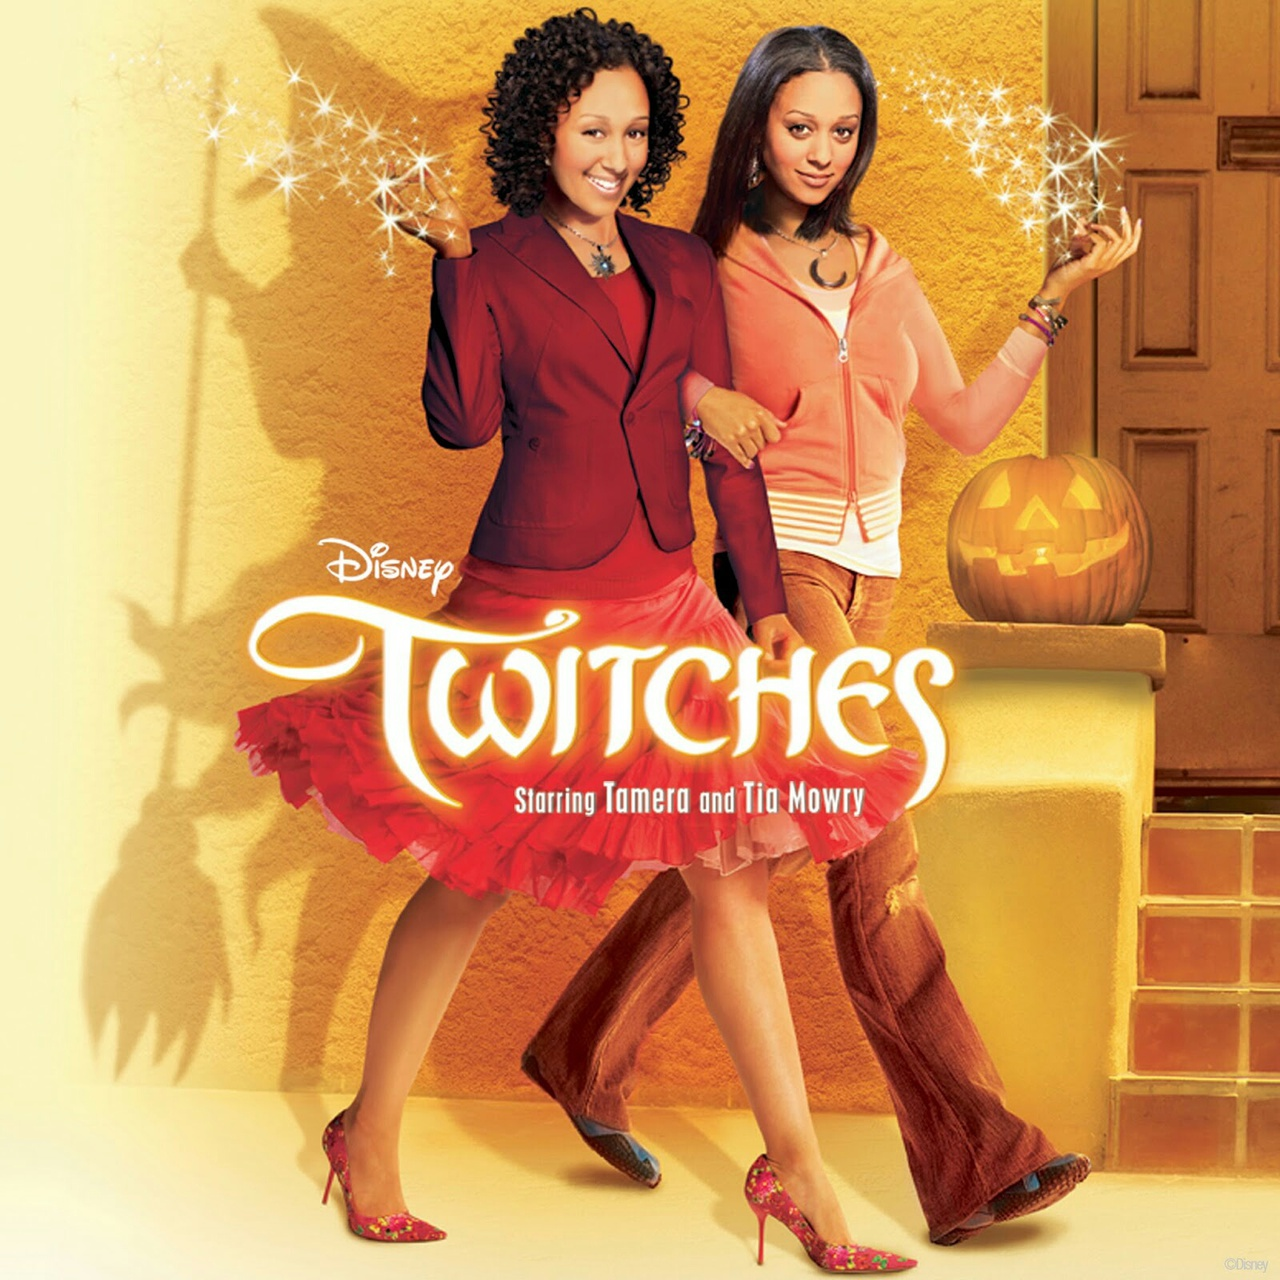 disney, childhood memories, and twitches image